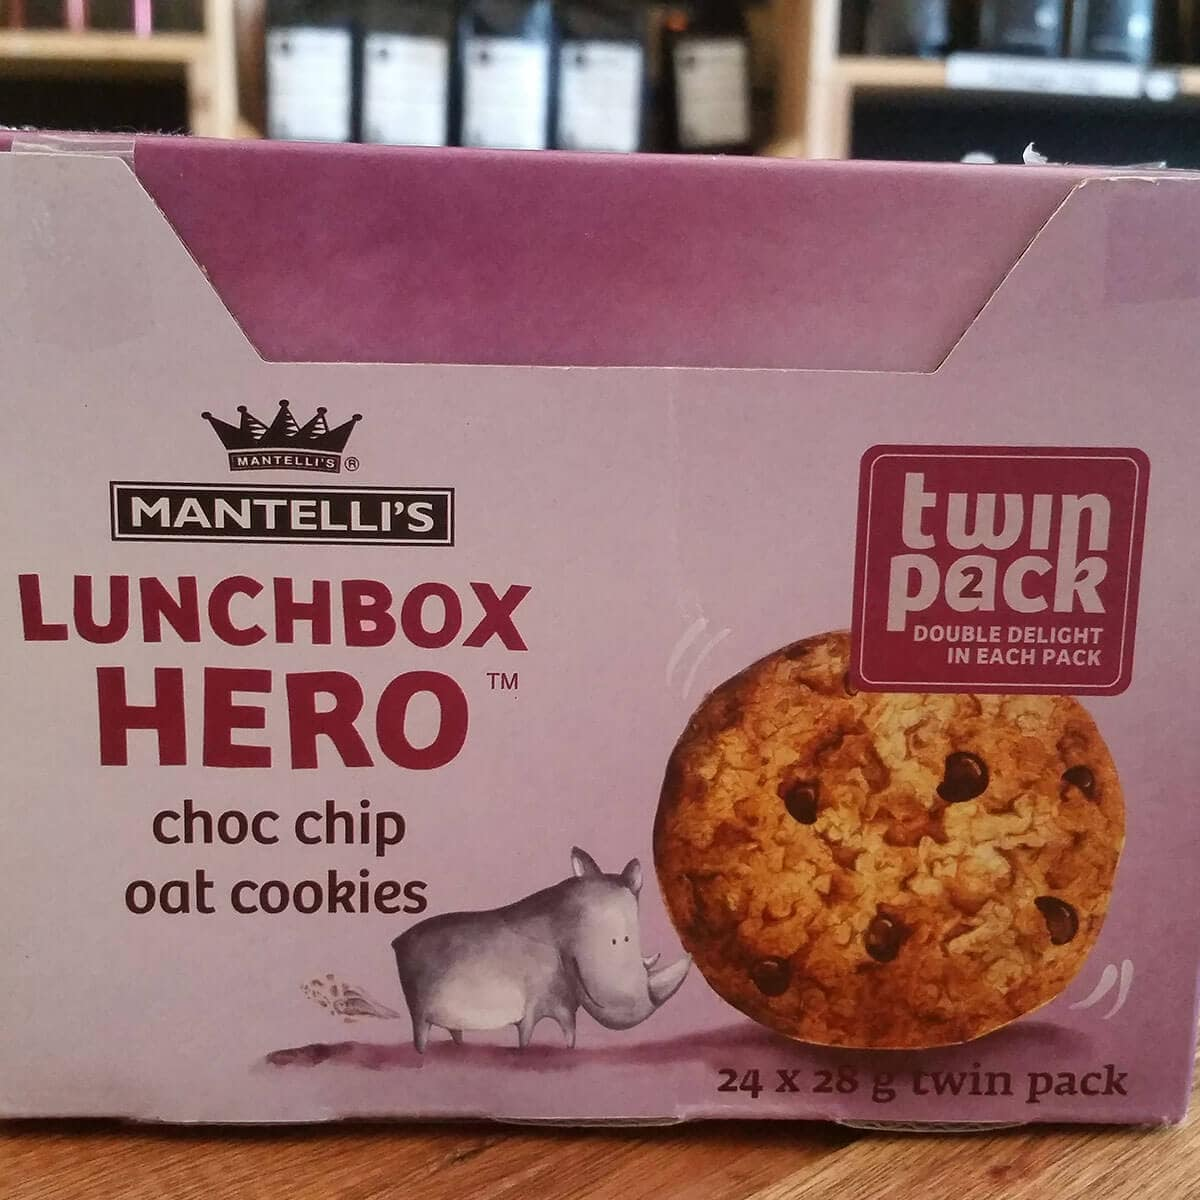 Mantelli's Lunch Box Hero Choc Chip Oat Cookies (24 x 28g)